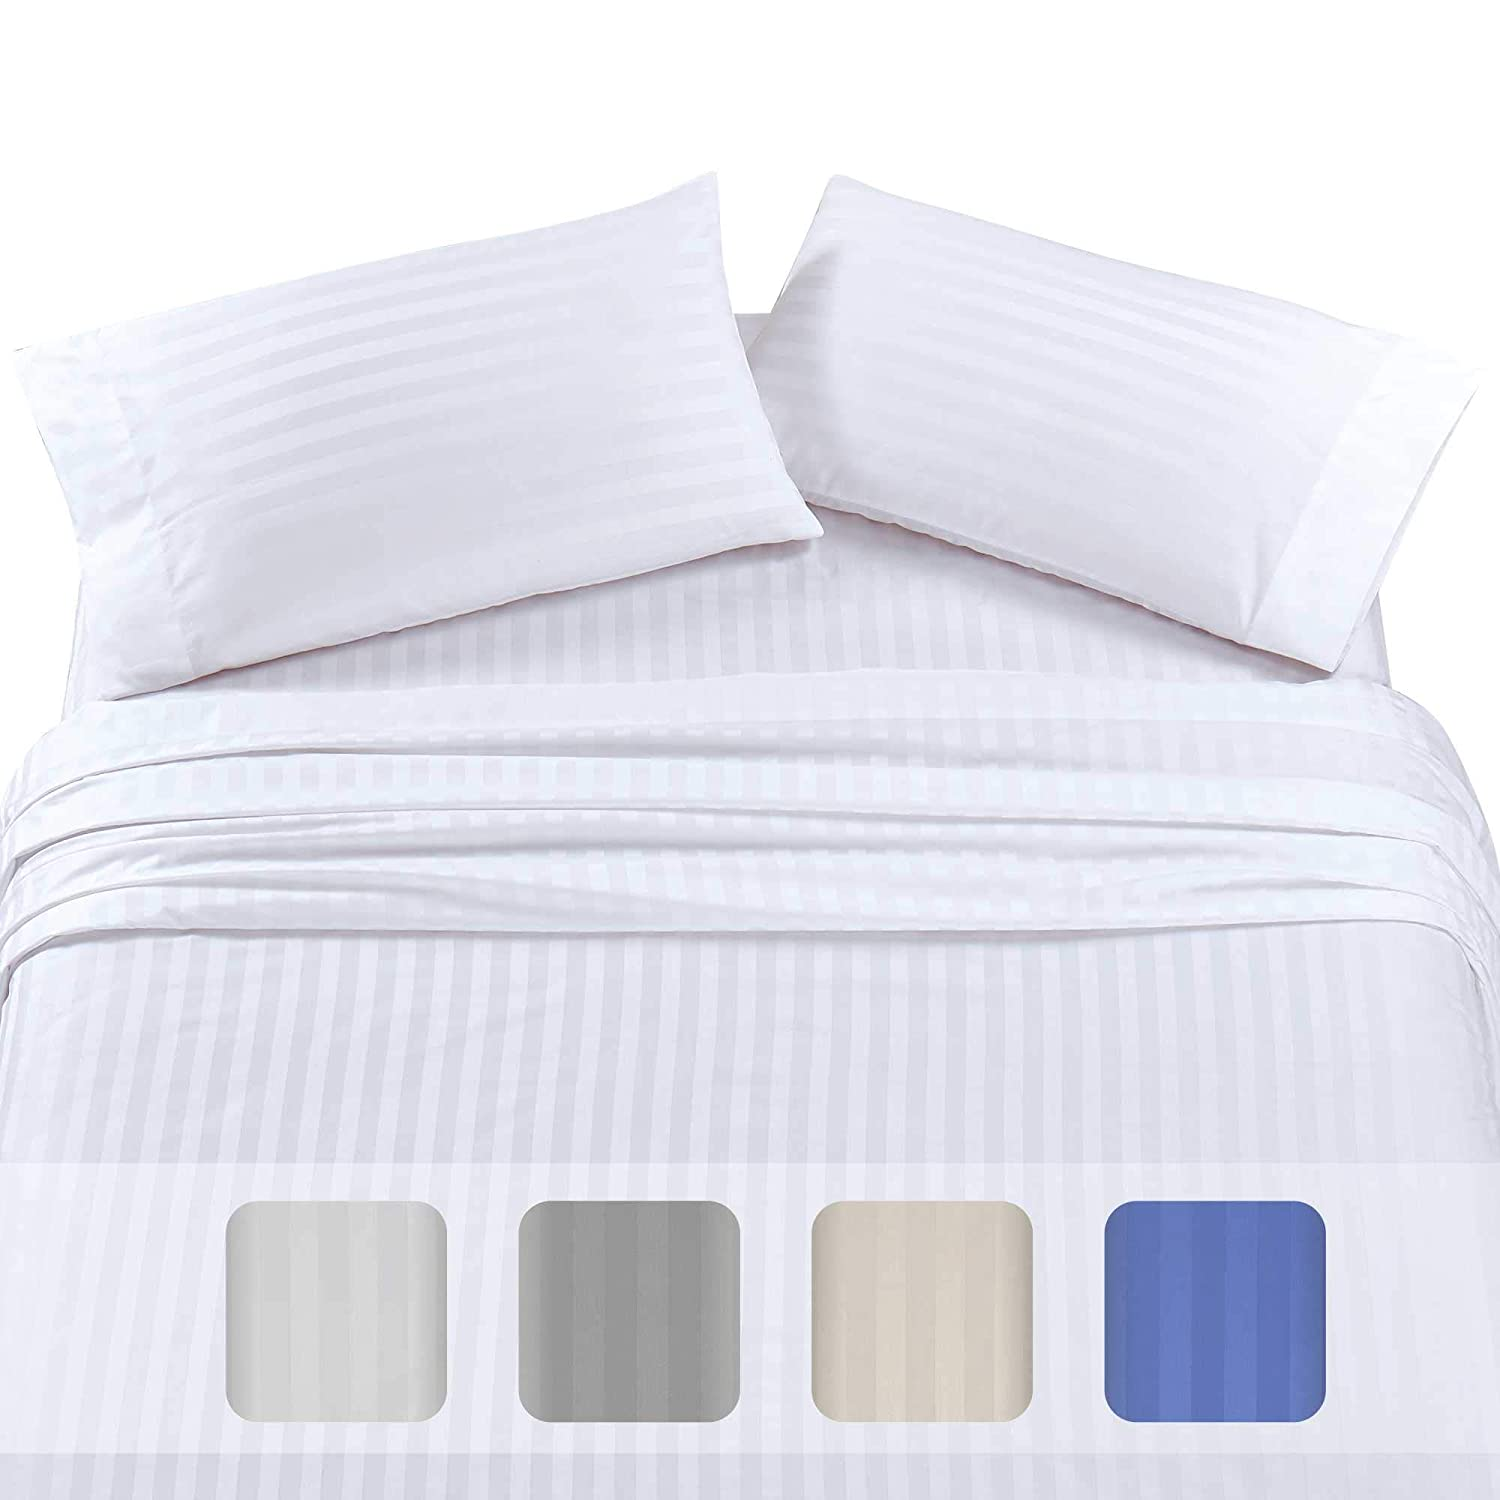 Premium 500 Thread Count Best Quality 100% Pure Cotton Sheets -3Piece White Color Twin Size Long-Staple Combed Cotton Dobby Damask Stripe Sheets for Bed Fits Mattress upto 17'' Deep Pocket Bedding Set